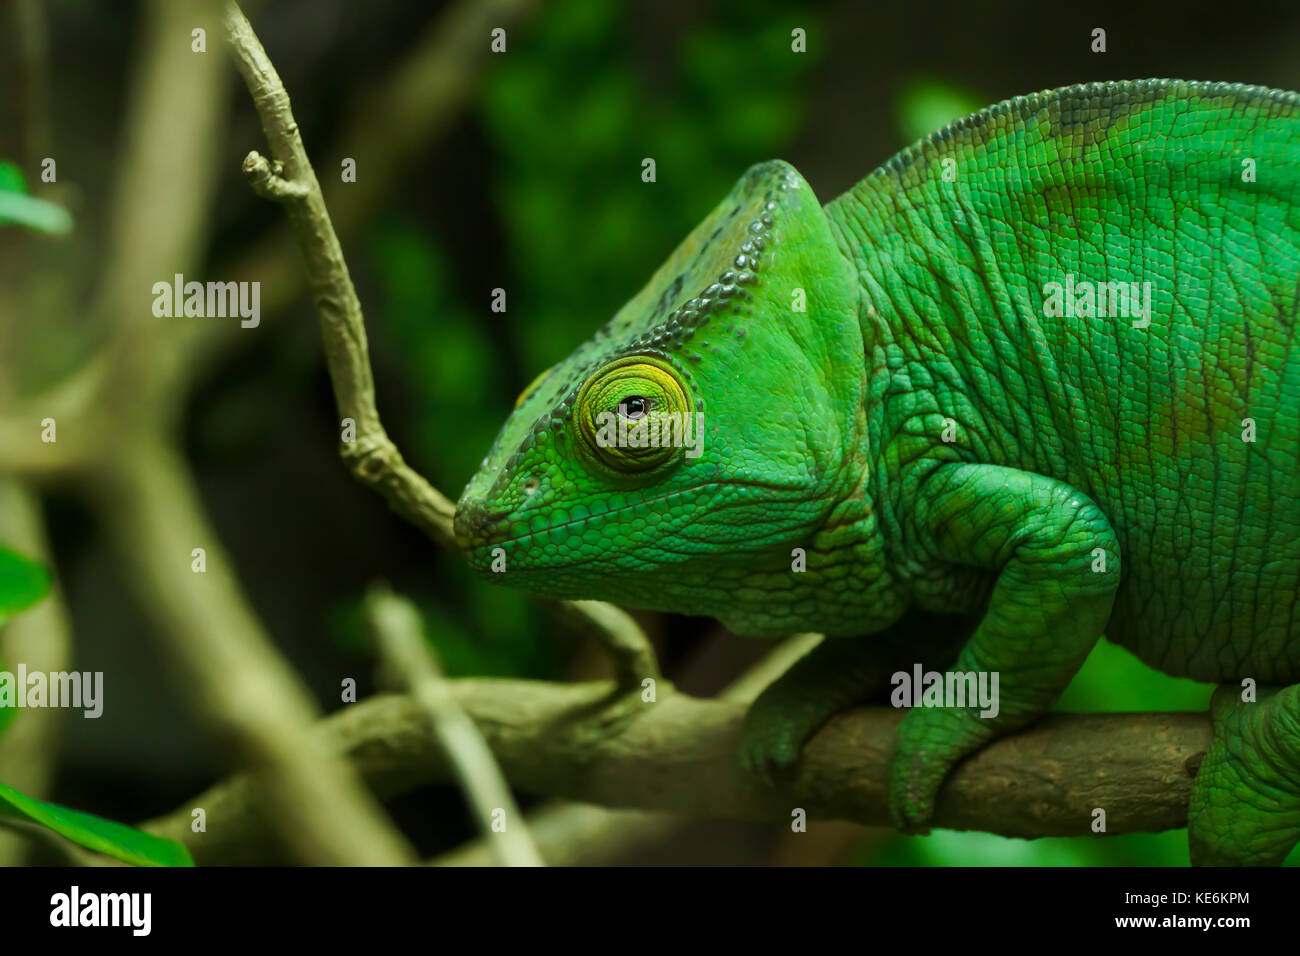 A chameleon looks at the camera on a branch in Devon, UK - Stock Image